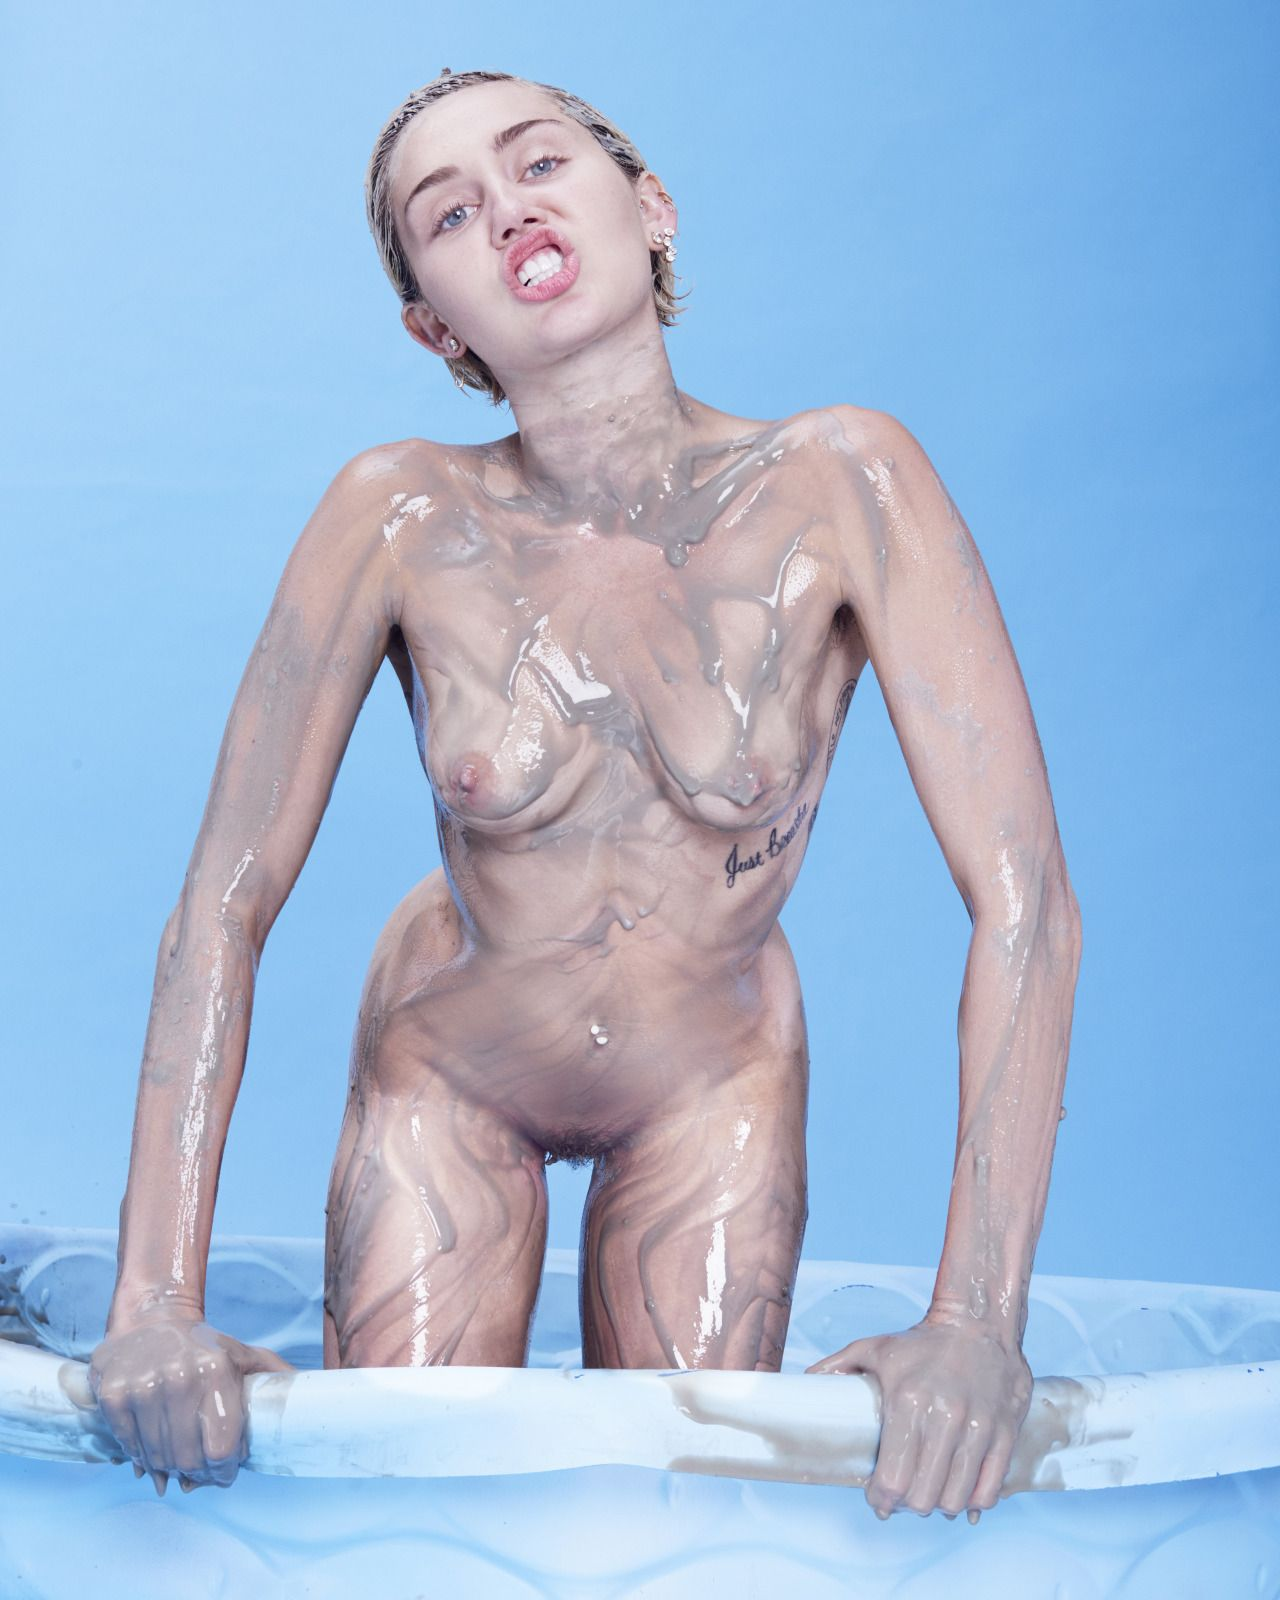 miley cryus havkng sex naked